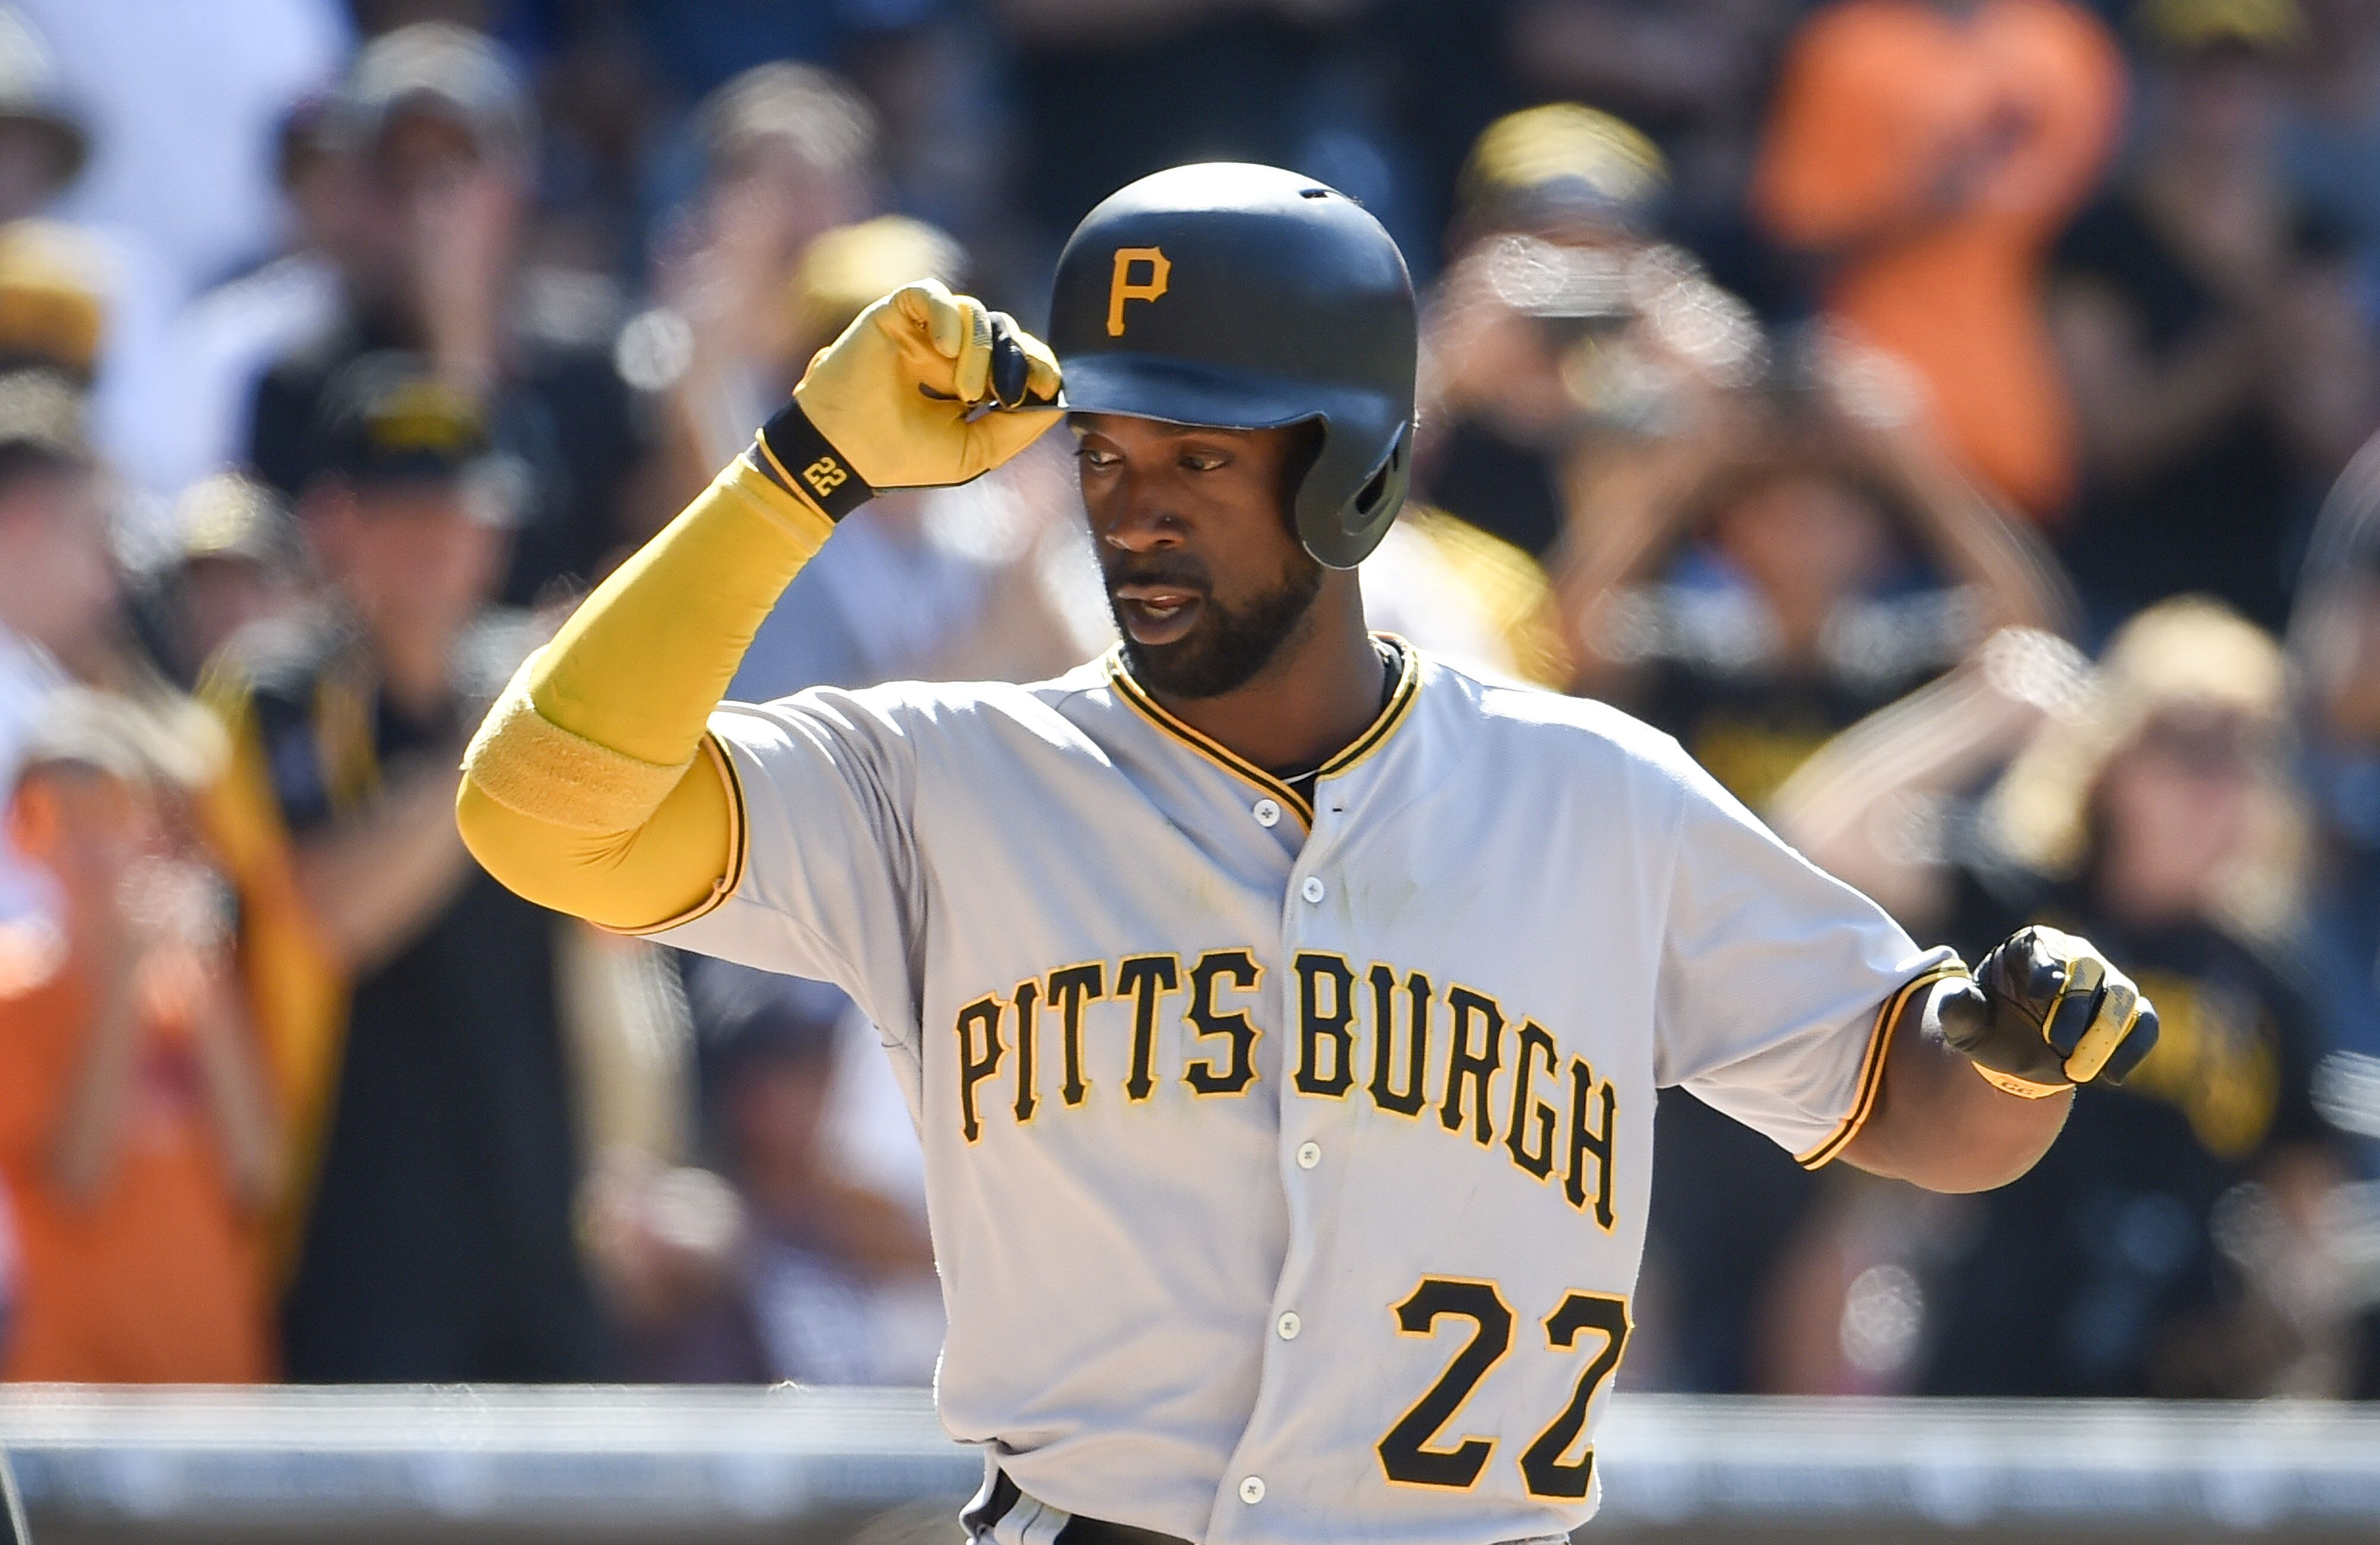 824546176-pittsburgh-pirates-v-san-diego-padres.jpg